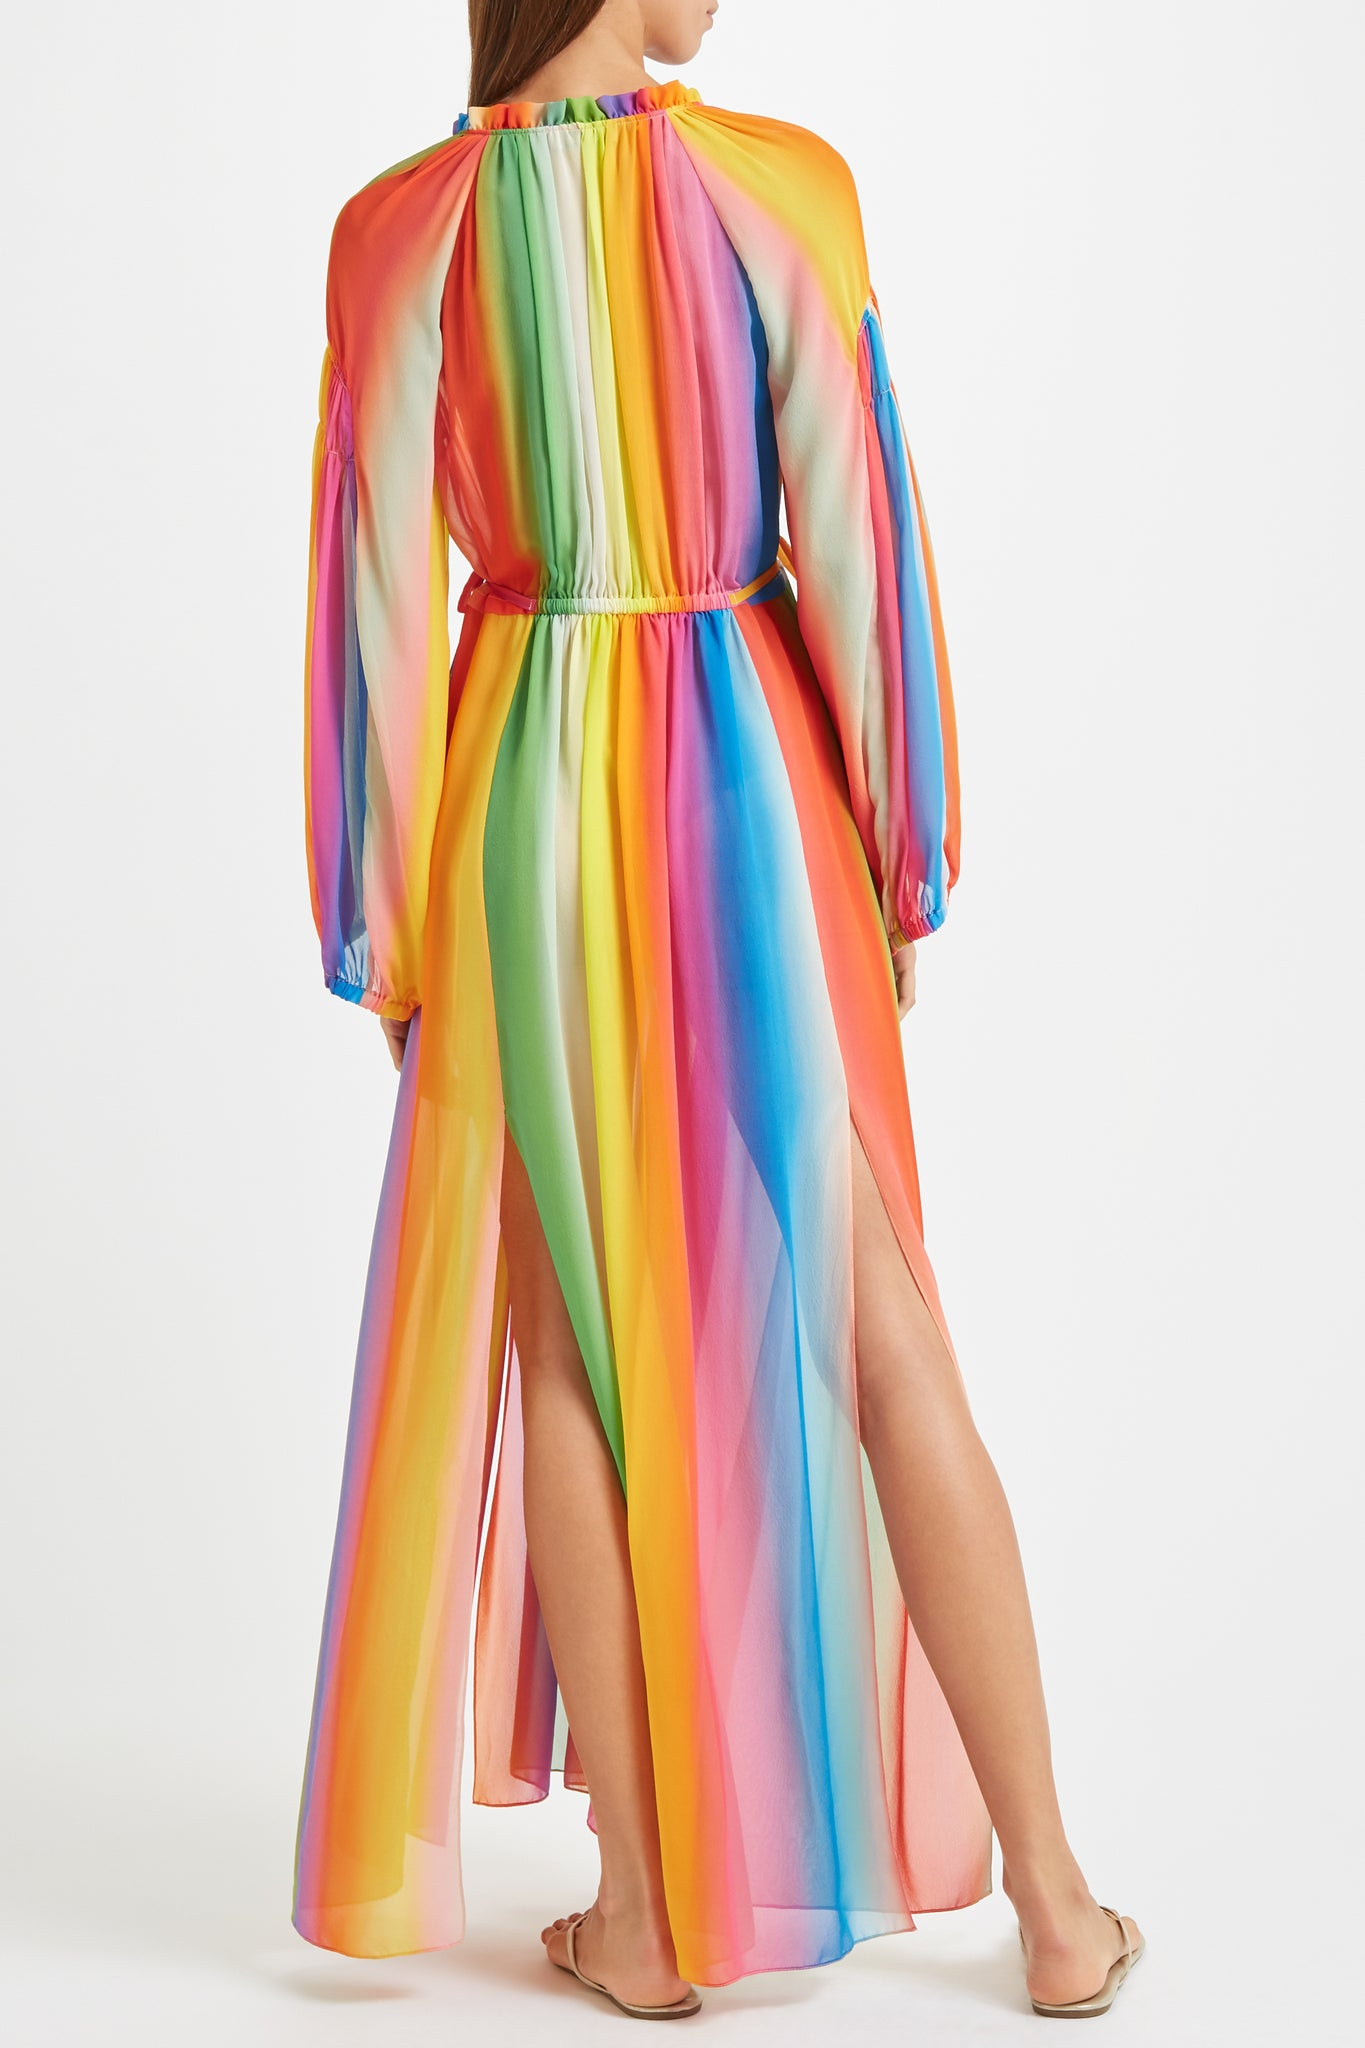 Kalmar Nazia Dress in galaxy ombre stripe